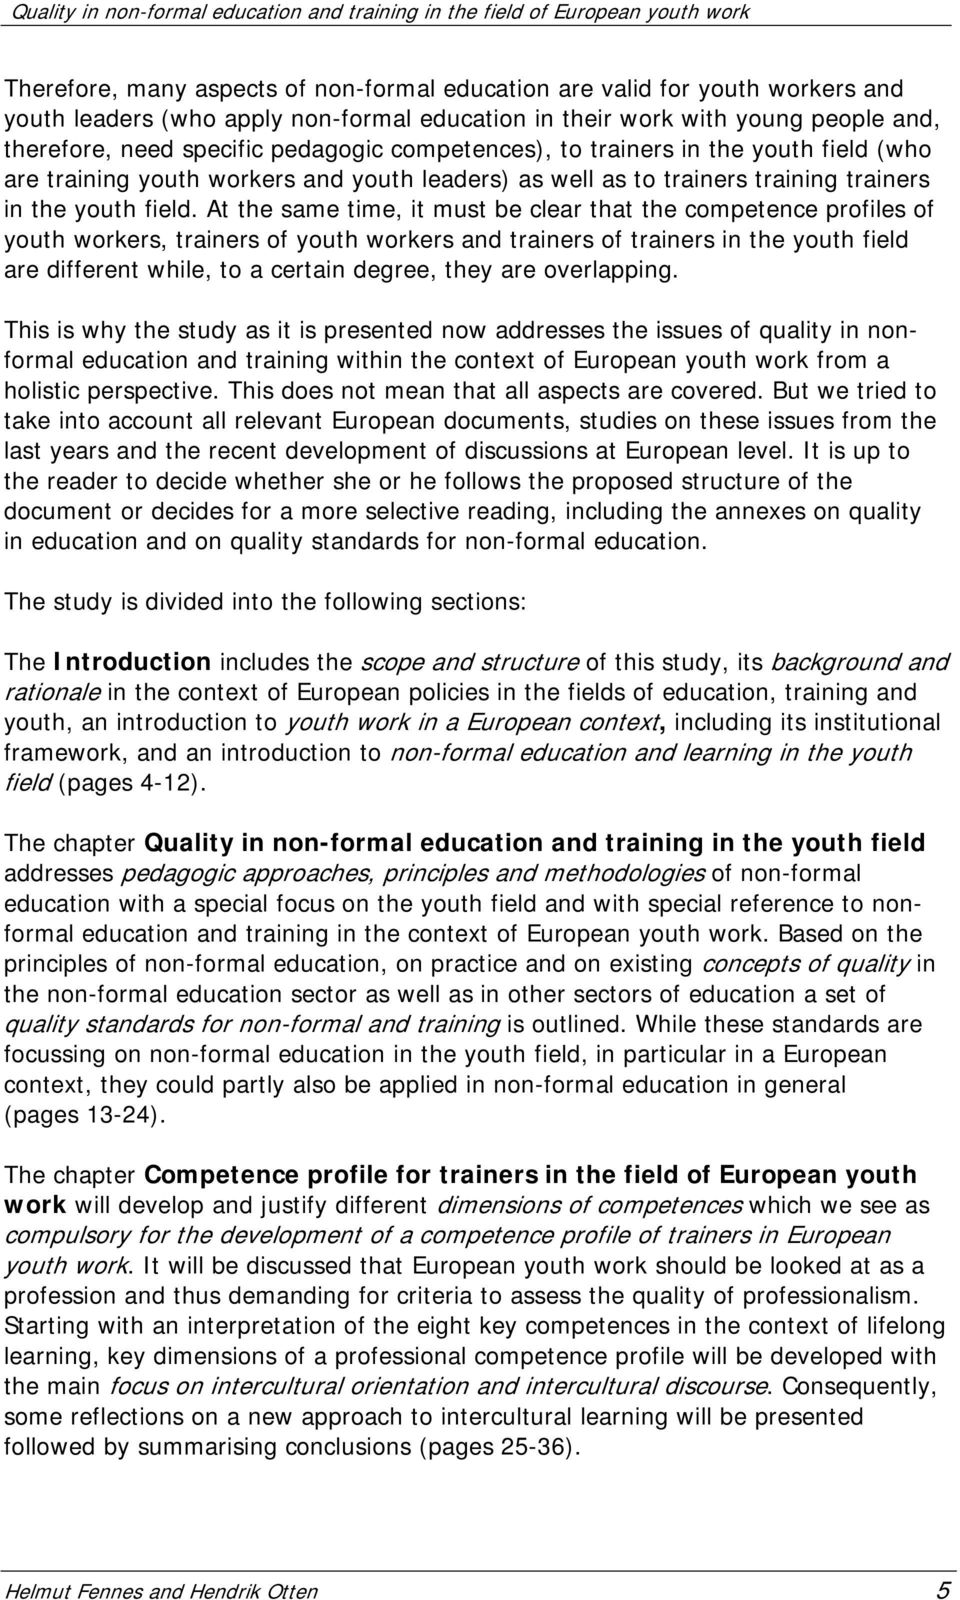 At the same time, it must be clear that the competence profiles of youth workers, trainers of youth workers and trainers of trainers in the youth field are different while, to a certain degree, they